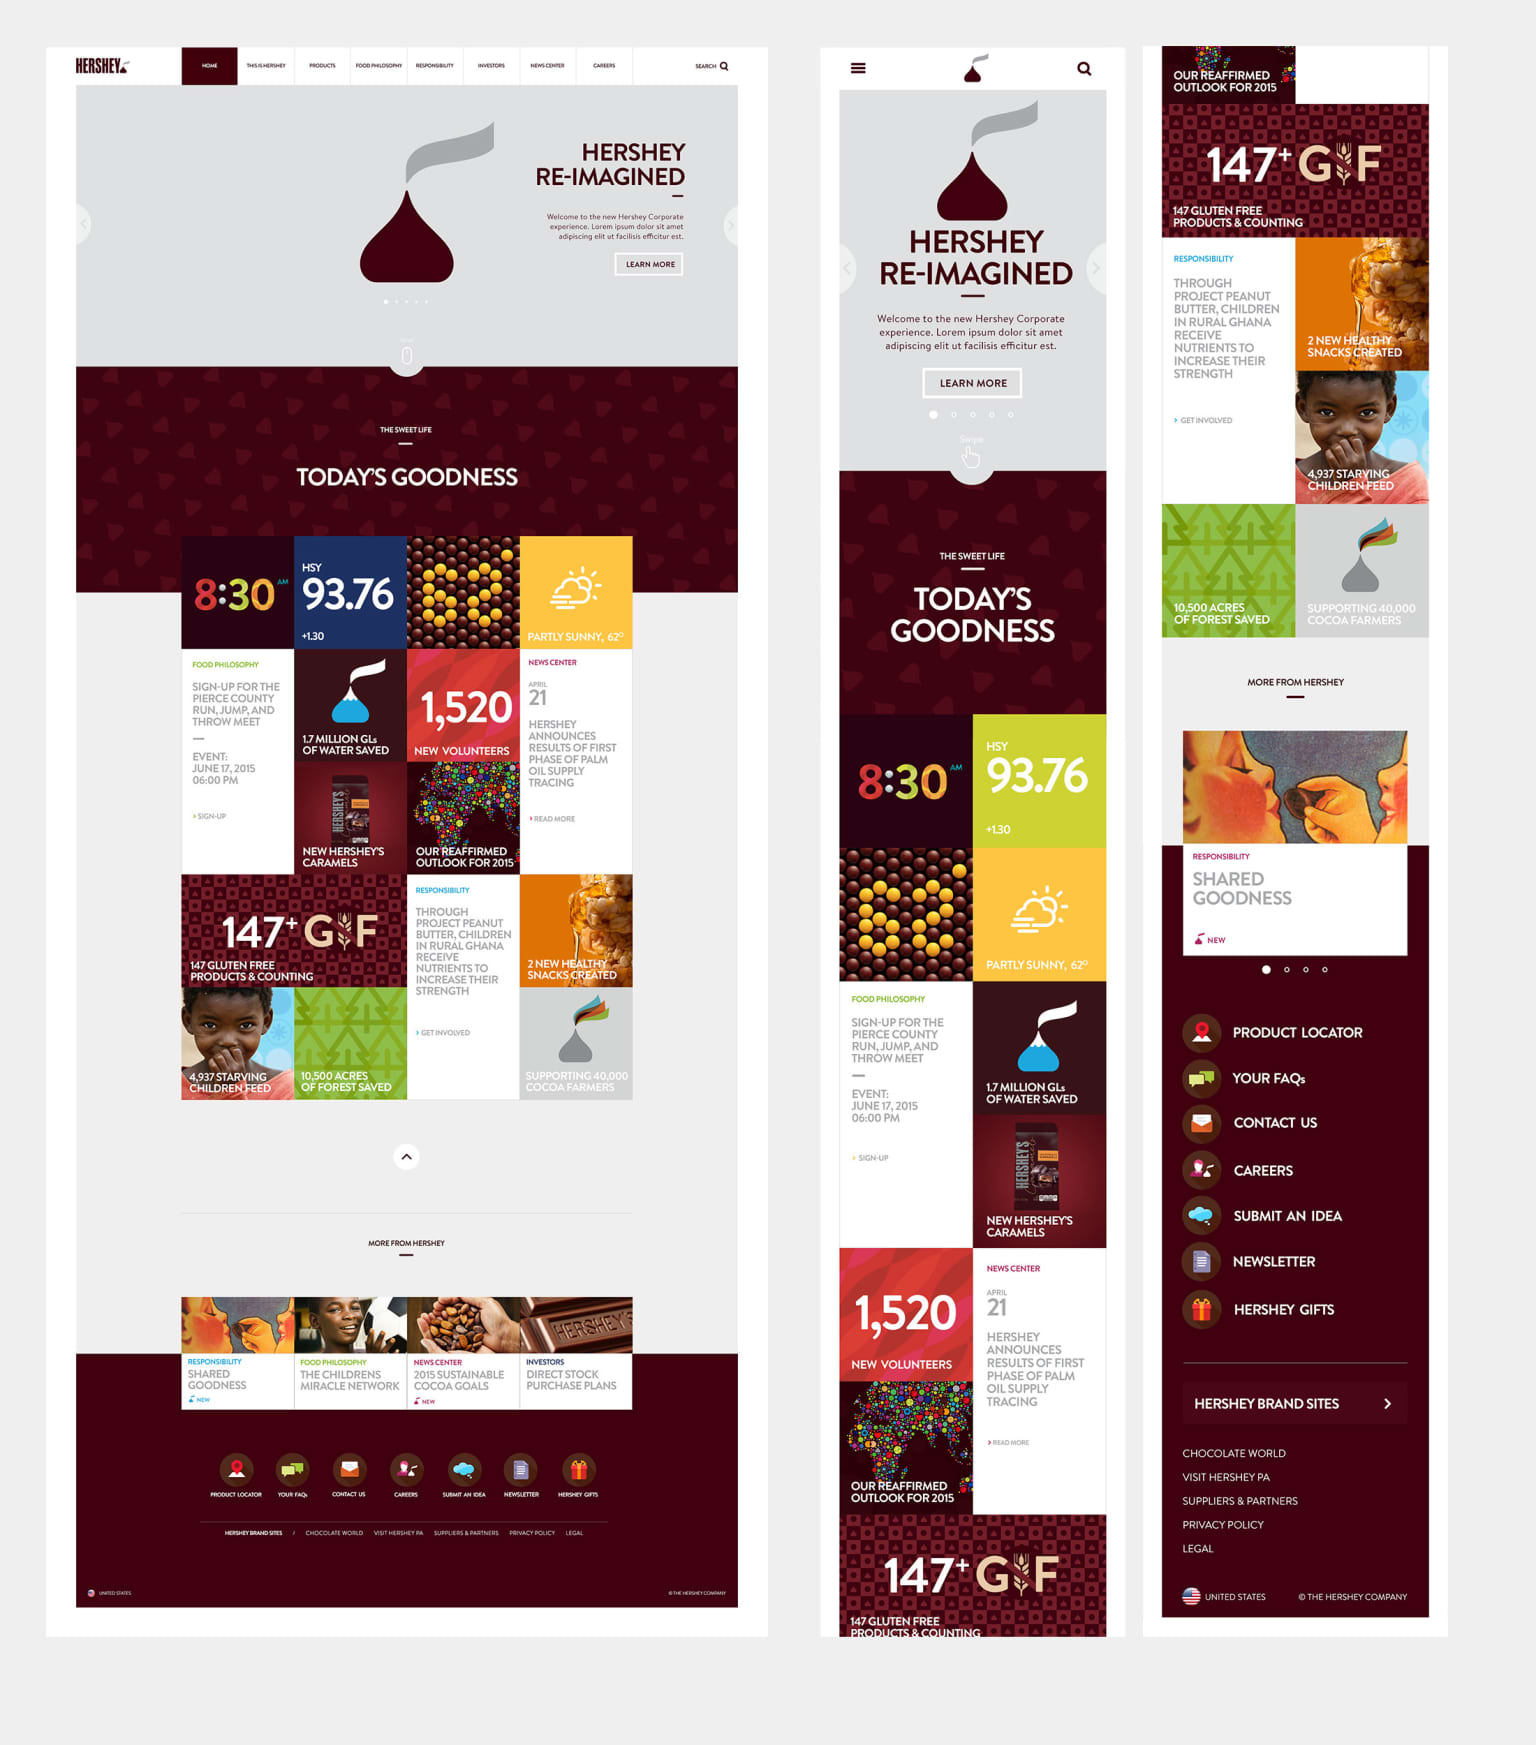 Hershey's Company Site Redesign